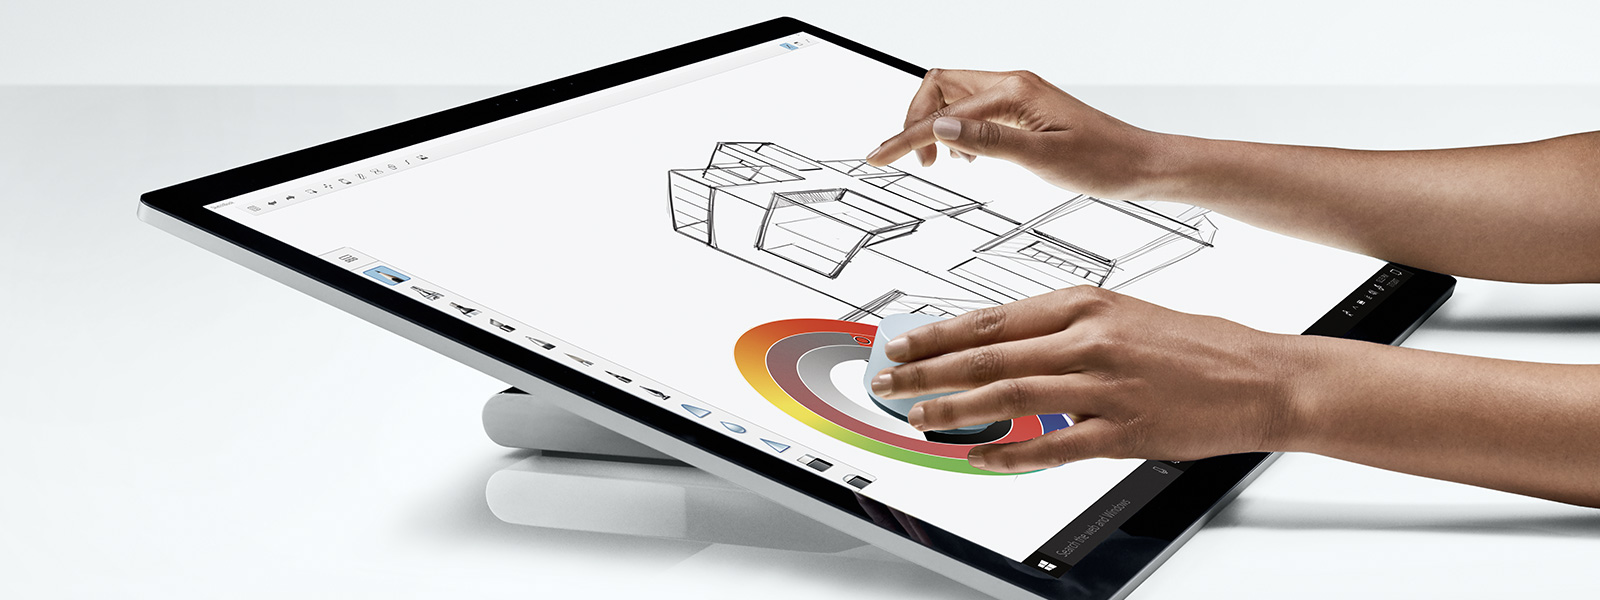 有個人使用 Surface Dial 與 Surface Studio 互動